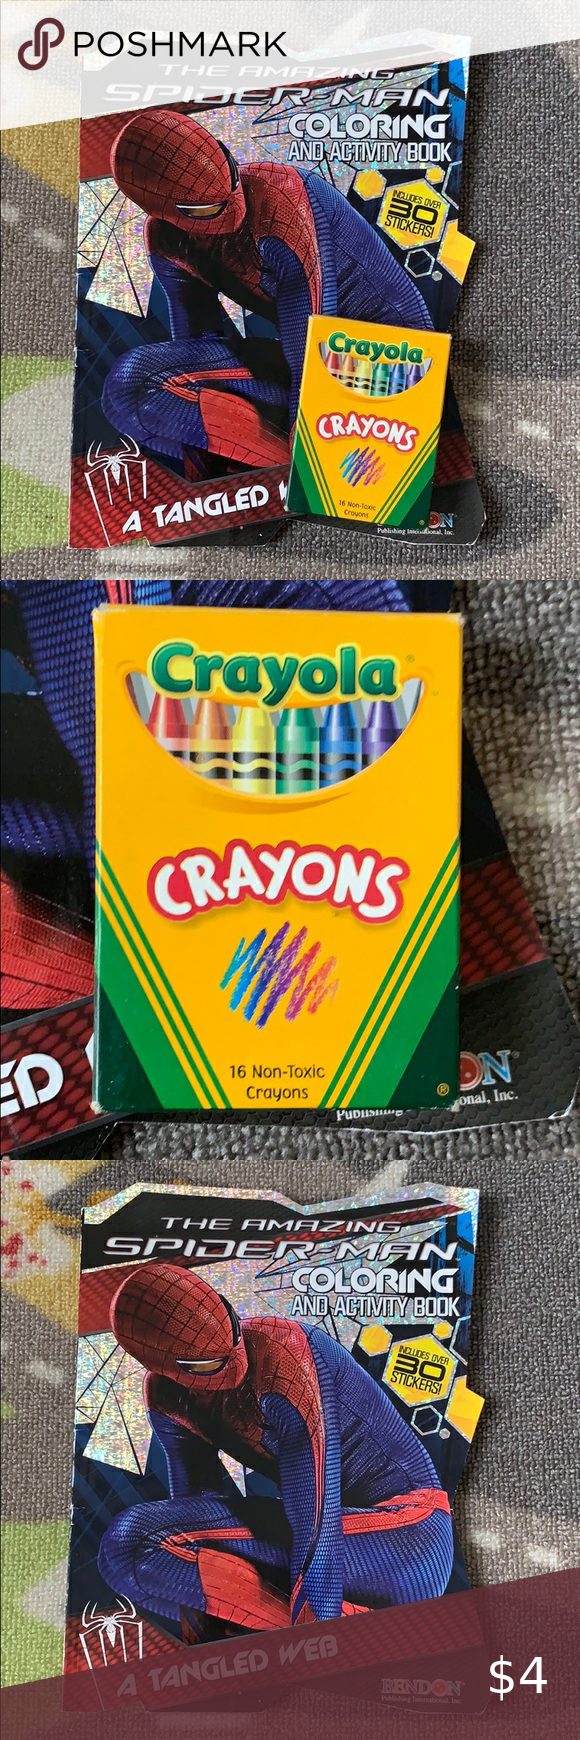 Spider Man Coloring Book Crayons Set In 2020 With Images Crayon Set Spiderman Coloring Crayola Crayons